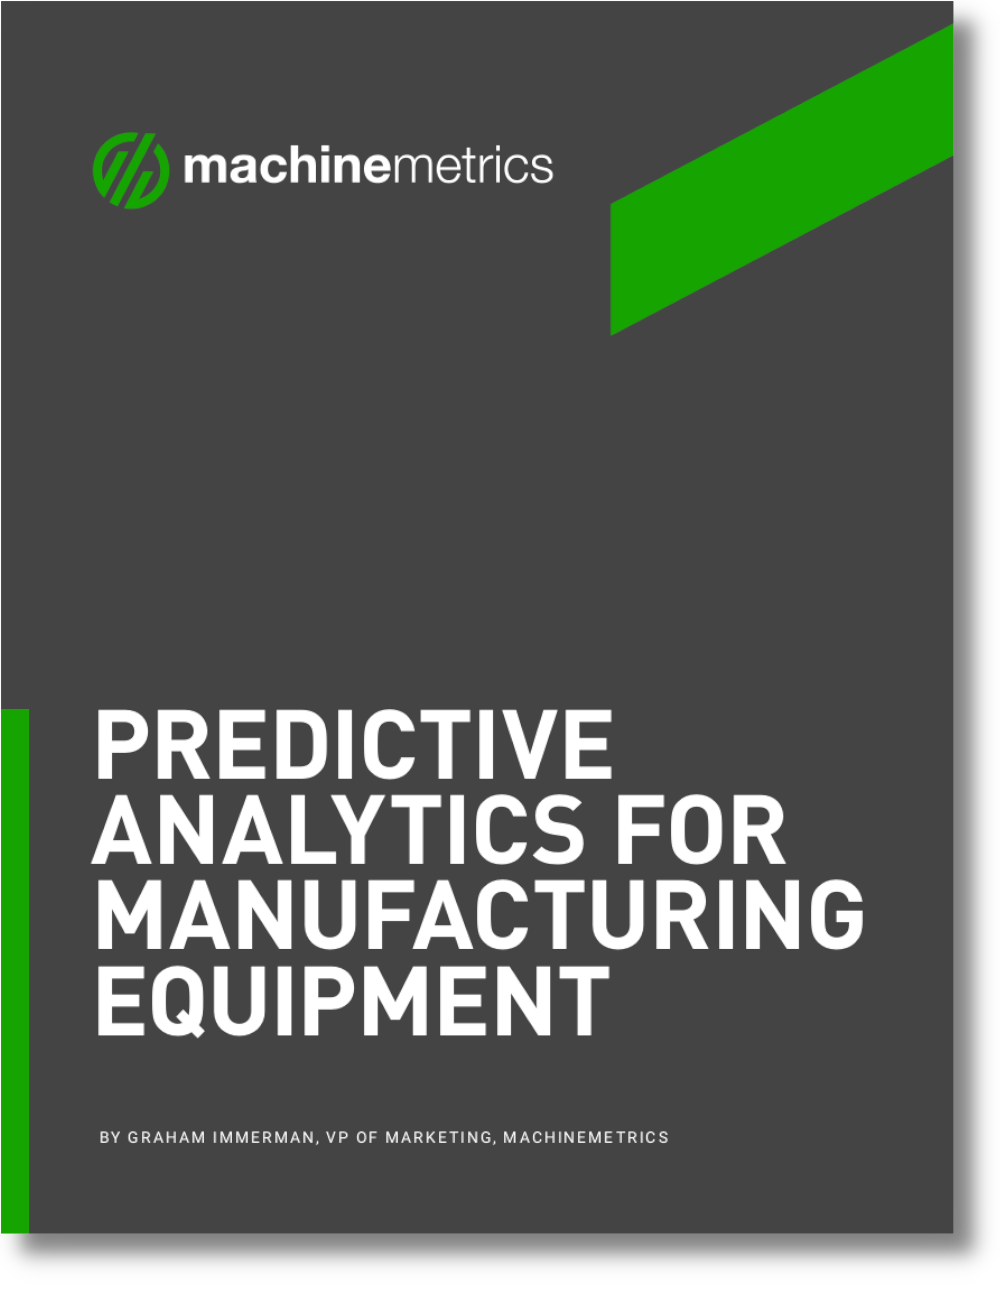 Predictive Analytics for Manufacturing Equipment eBook Cover